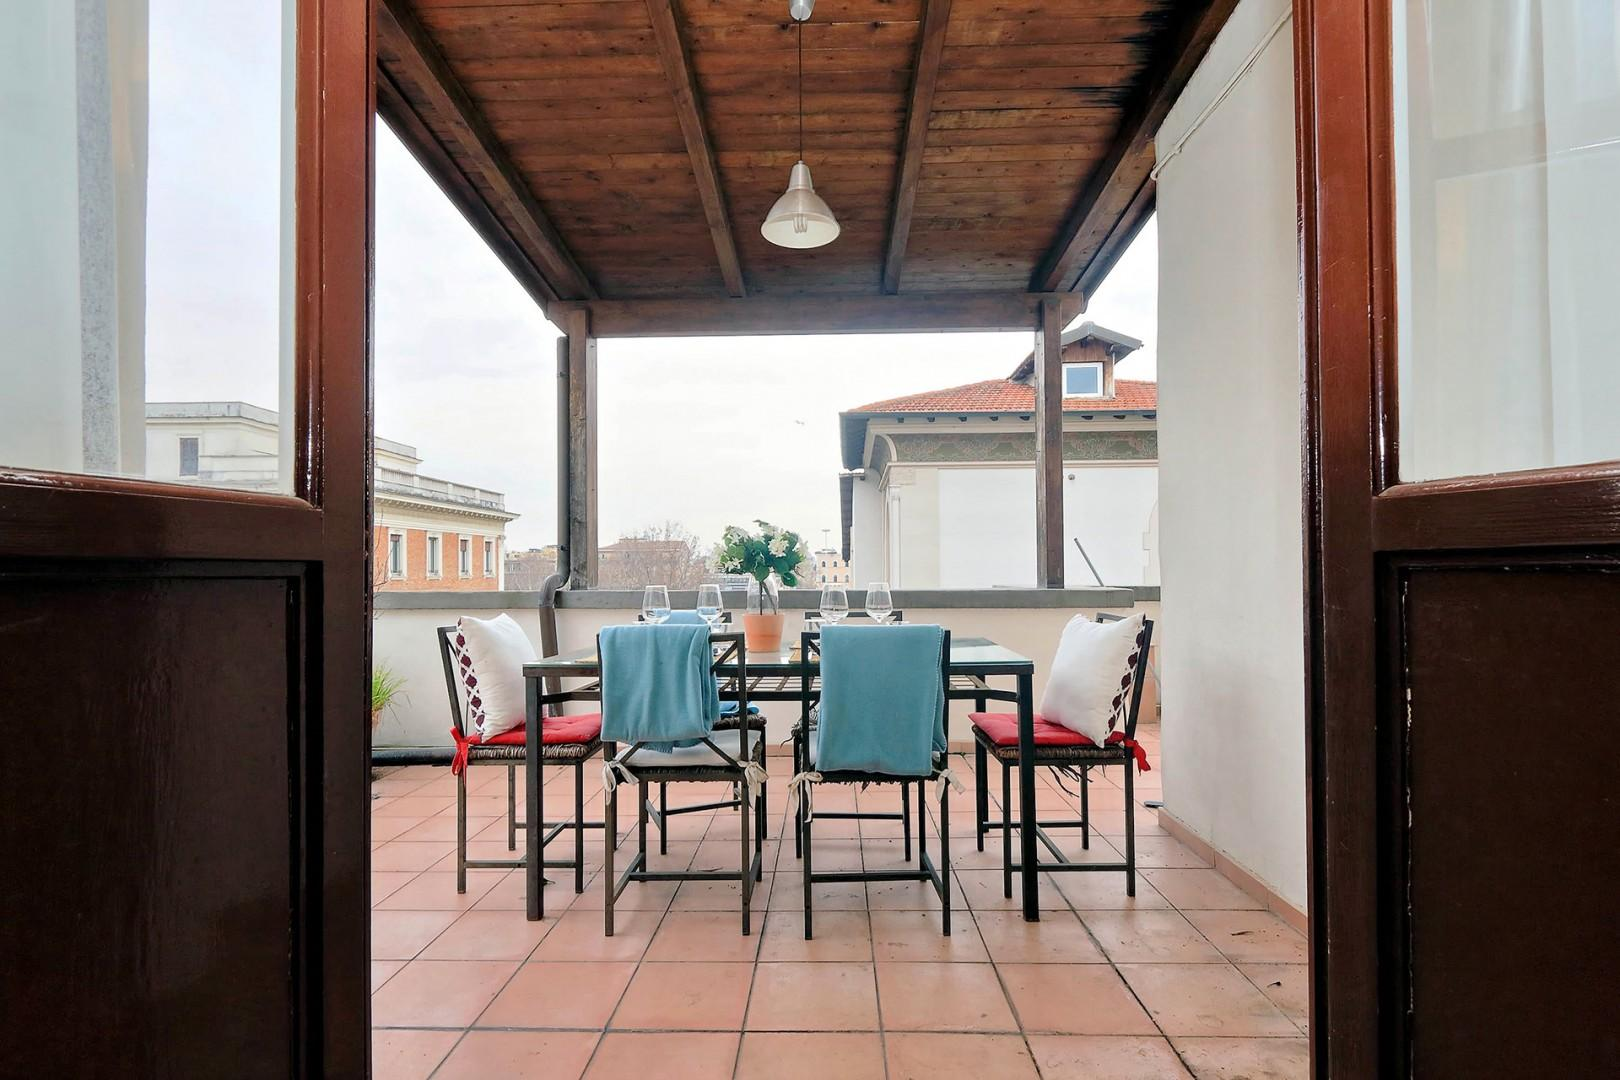 What better way to enjoy Rome than on your own expansive terrace